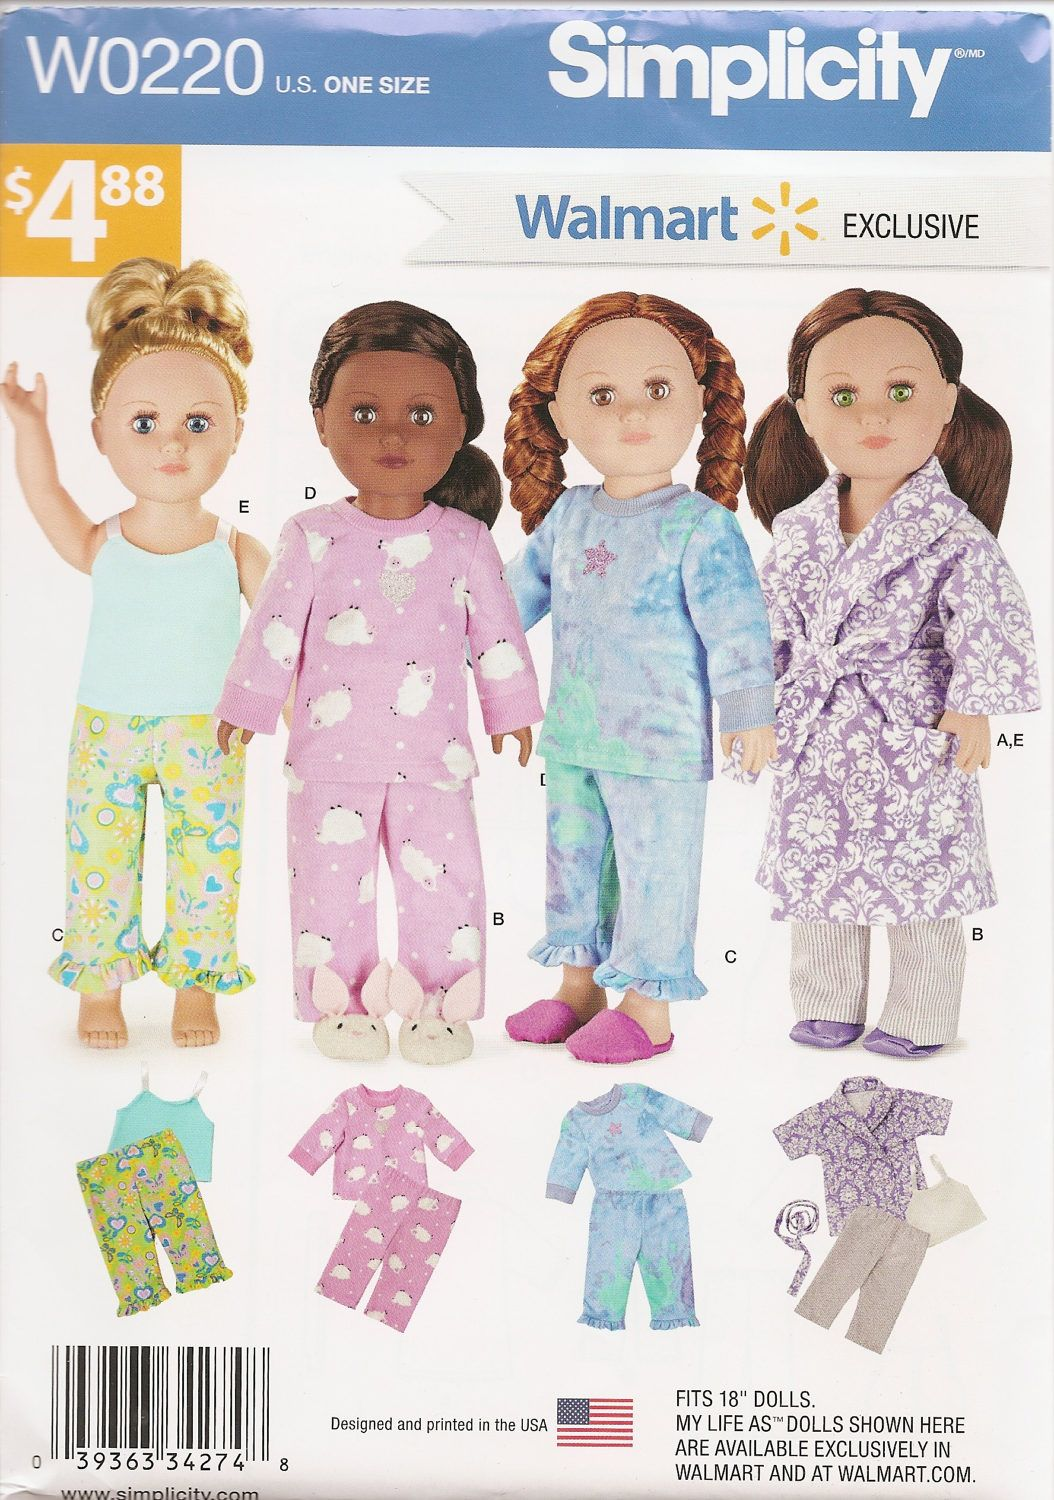 Simplicity Sewing Pattern 0220 Walmart Exclusive 18 Doll Clothes Pajamas Robe Tank Pants My 18 Inch Doll Clothes Pattern American Doll Clothes Ag Doll Clothes